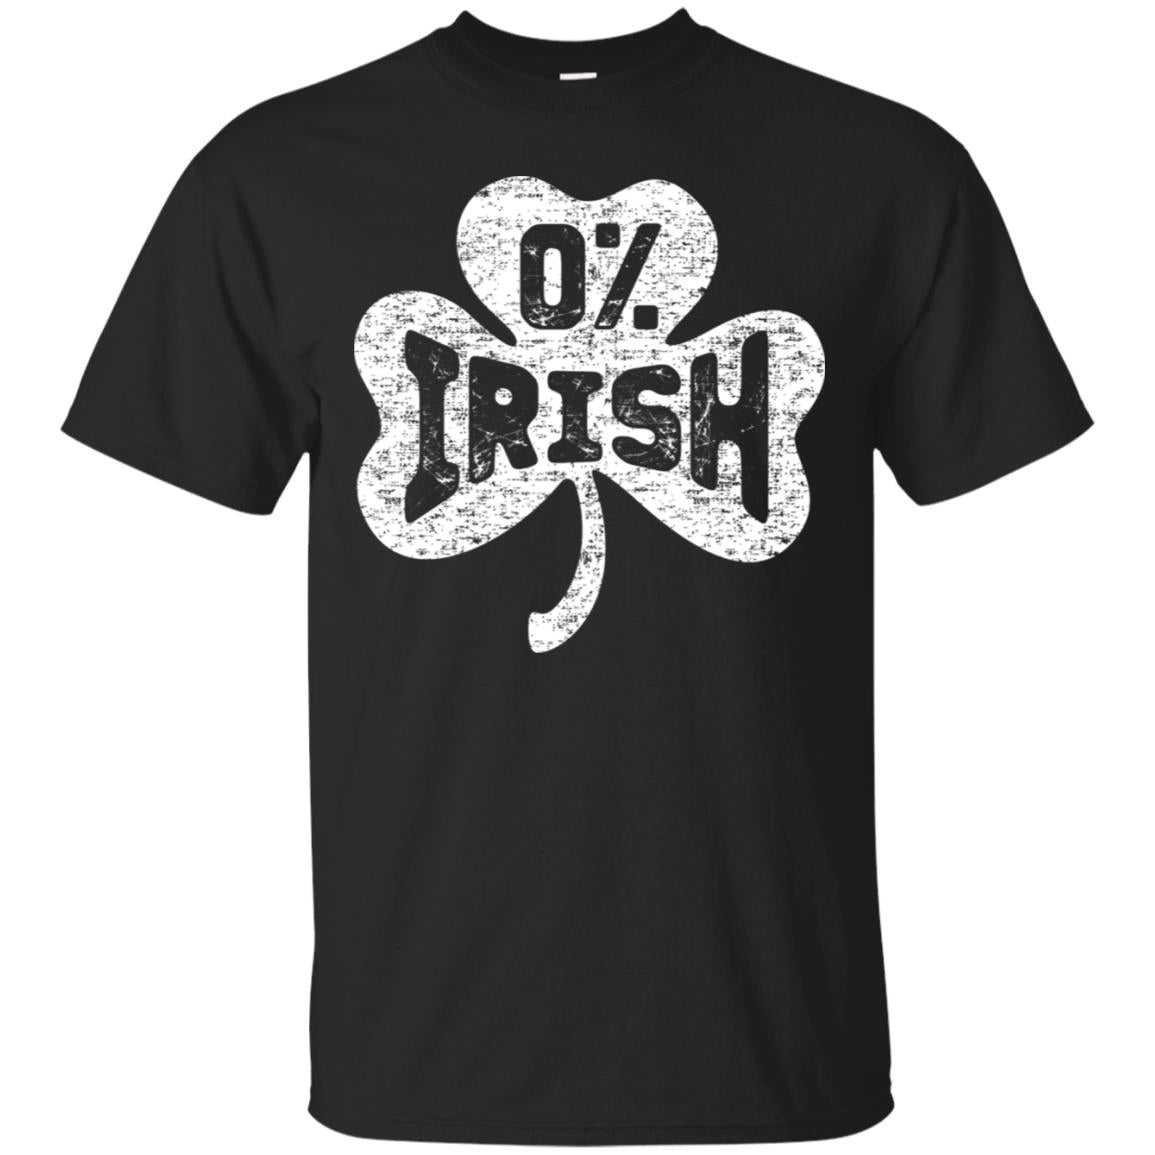 0% Irish Vintage St. Patricks Day T Shirt Men Women Clothes 99promocode